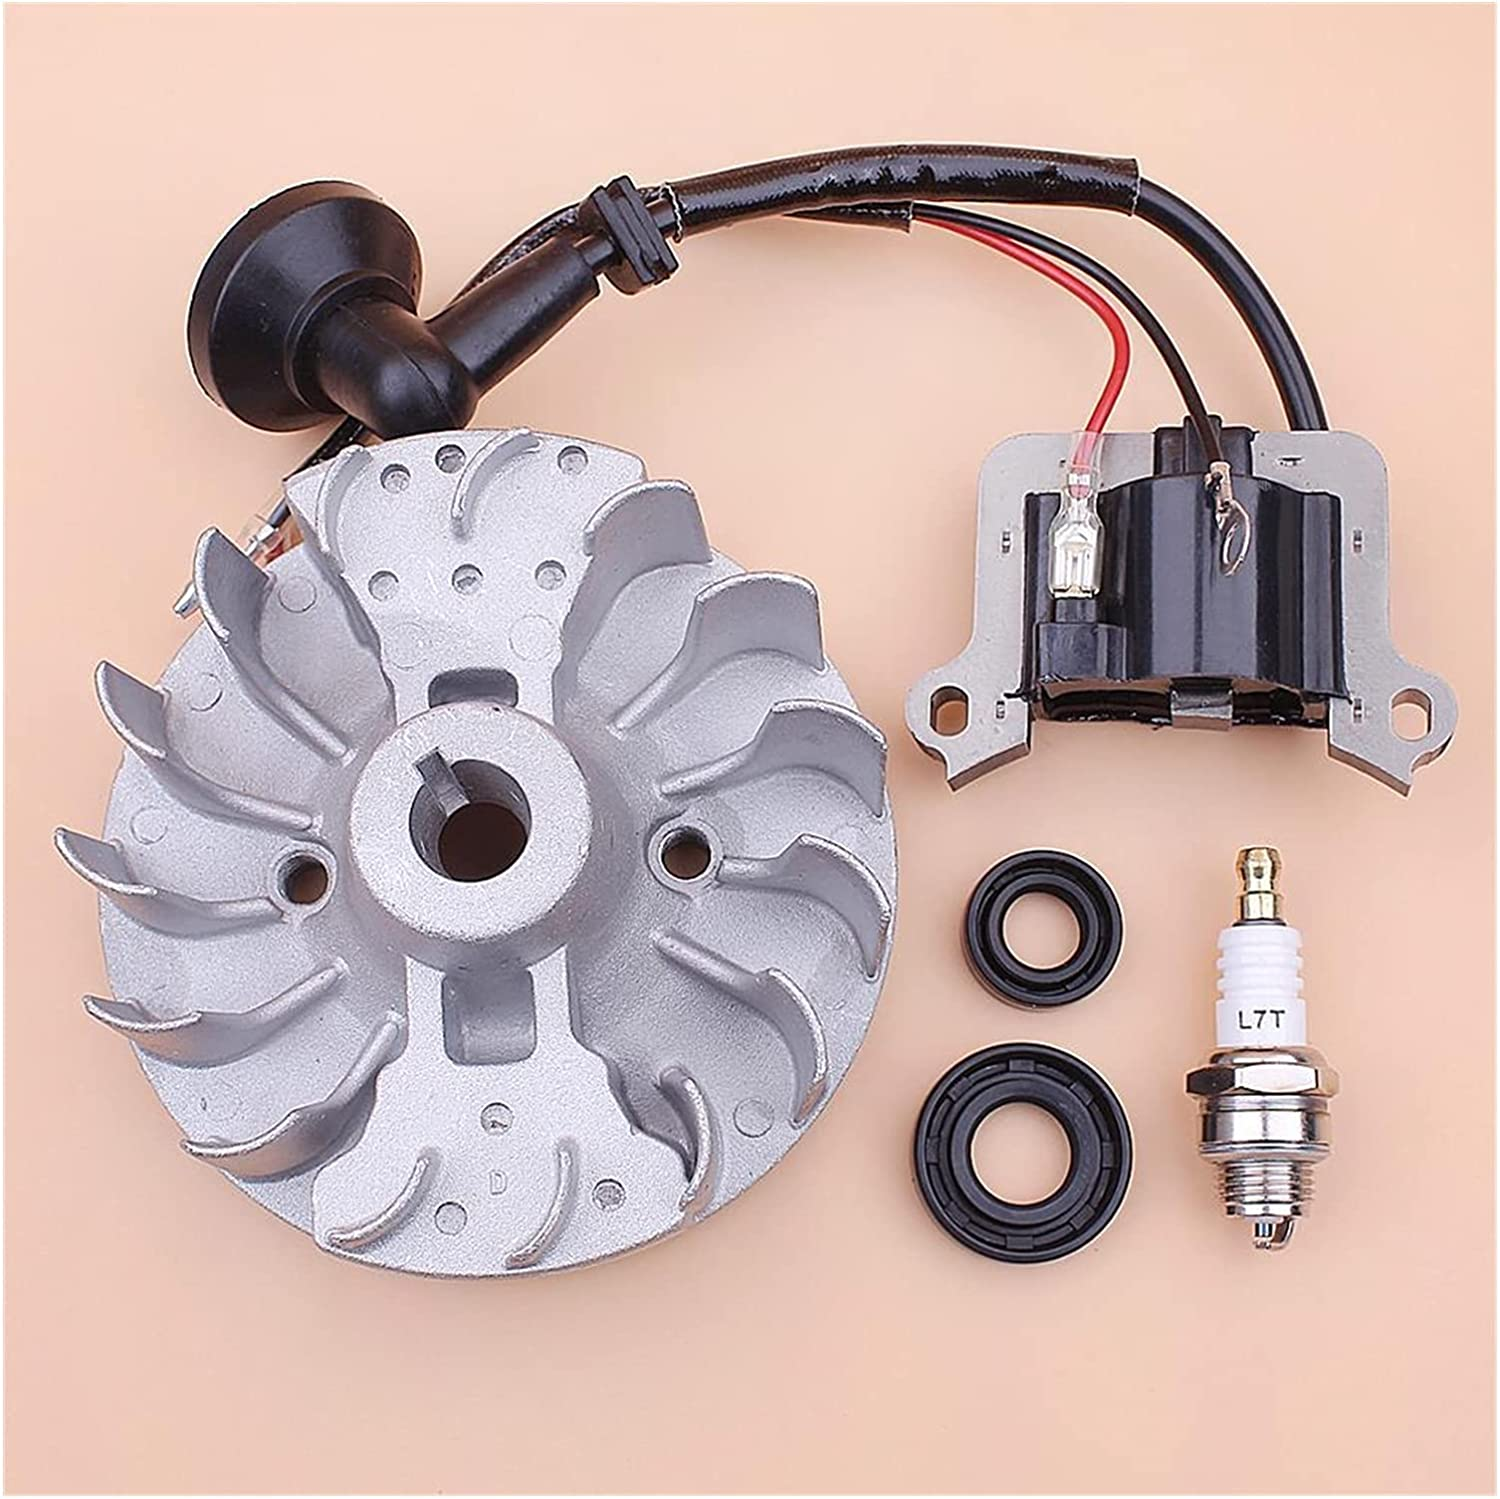 ZRNG Flywheel Ignition Inexpensive Gorgeous Coil for 40-5 Se 43cc Plug 52cc Oil Spark